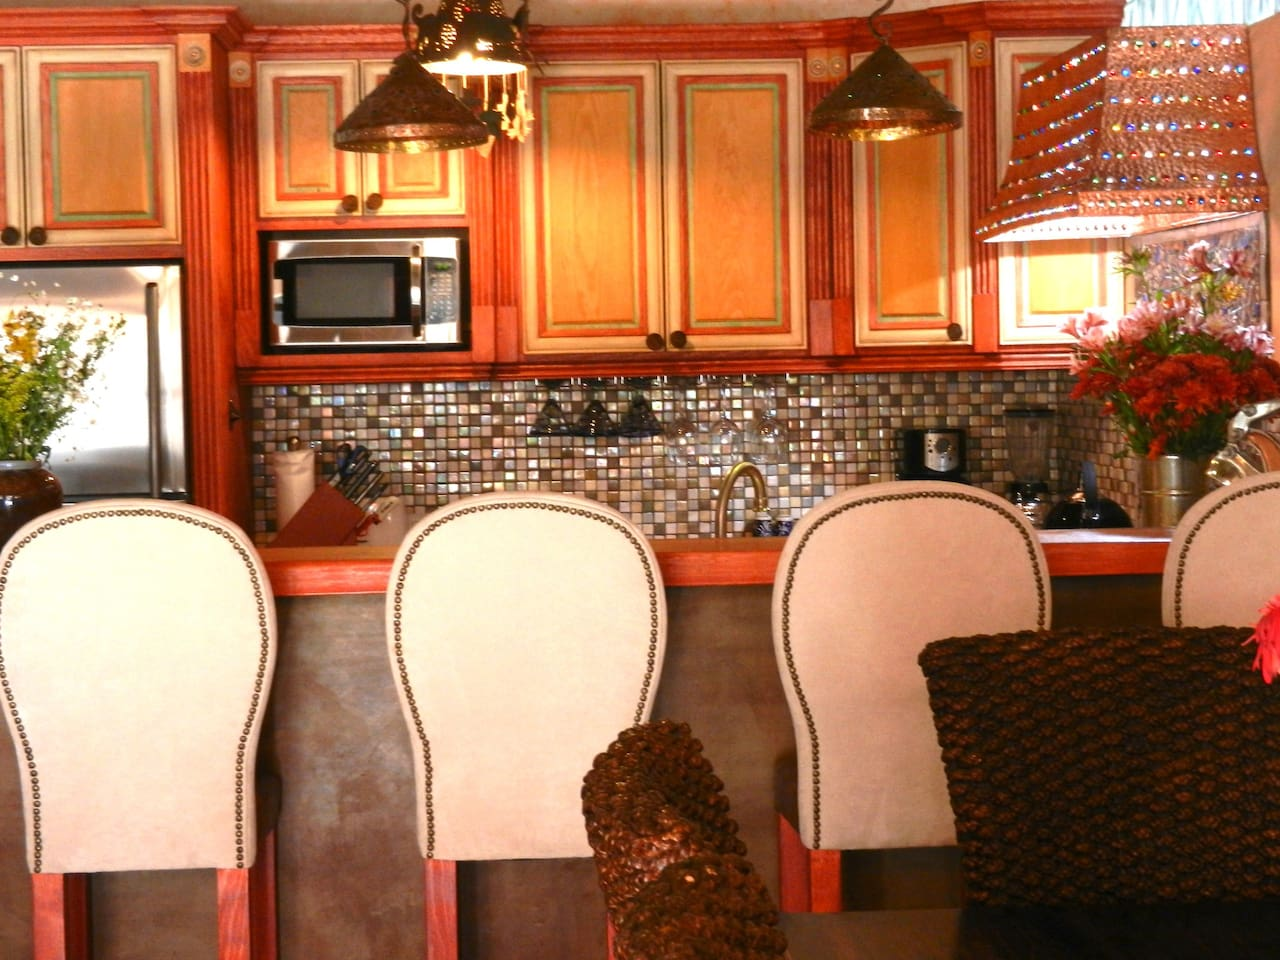 Kitchen features bar so guests can help or watch you cook.